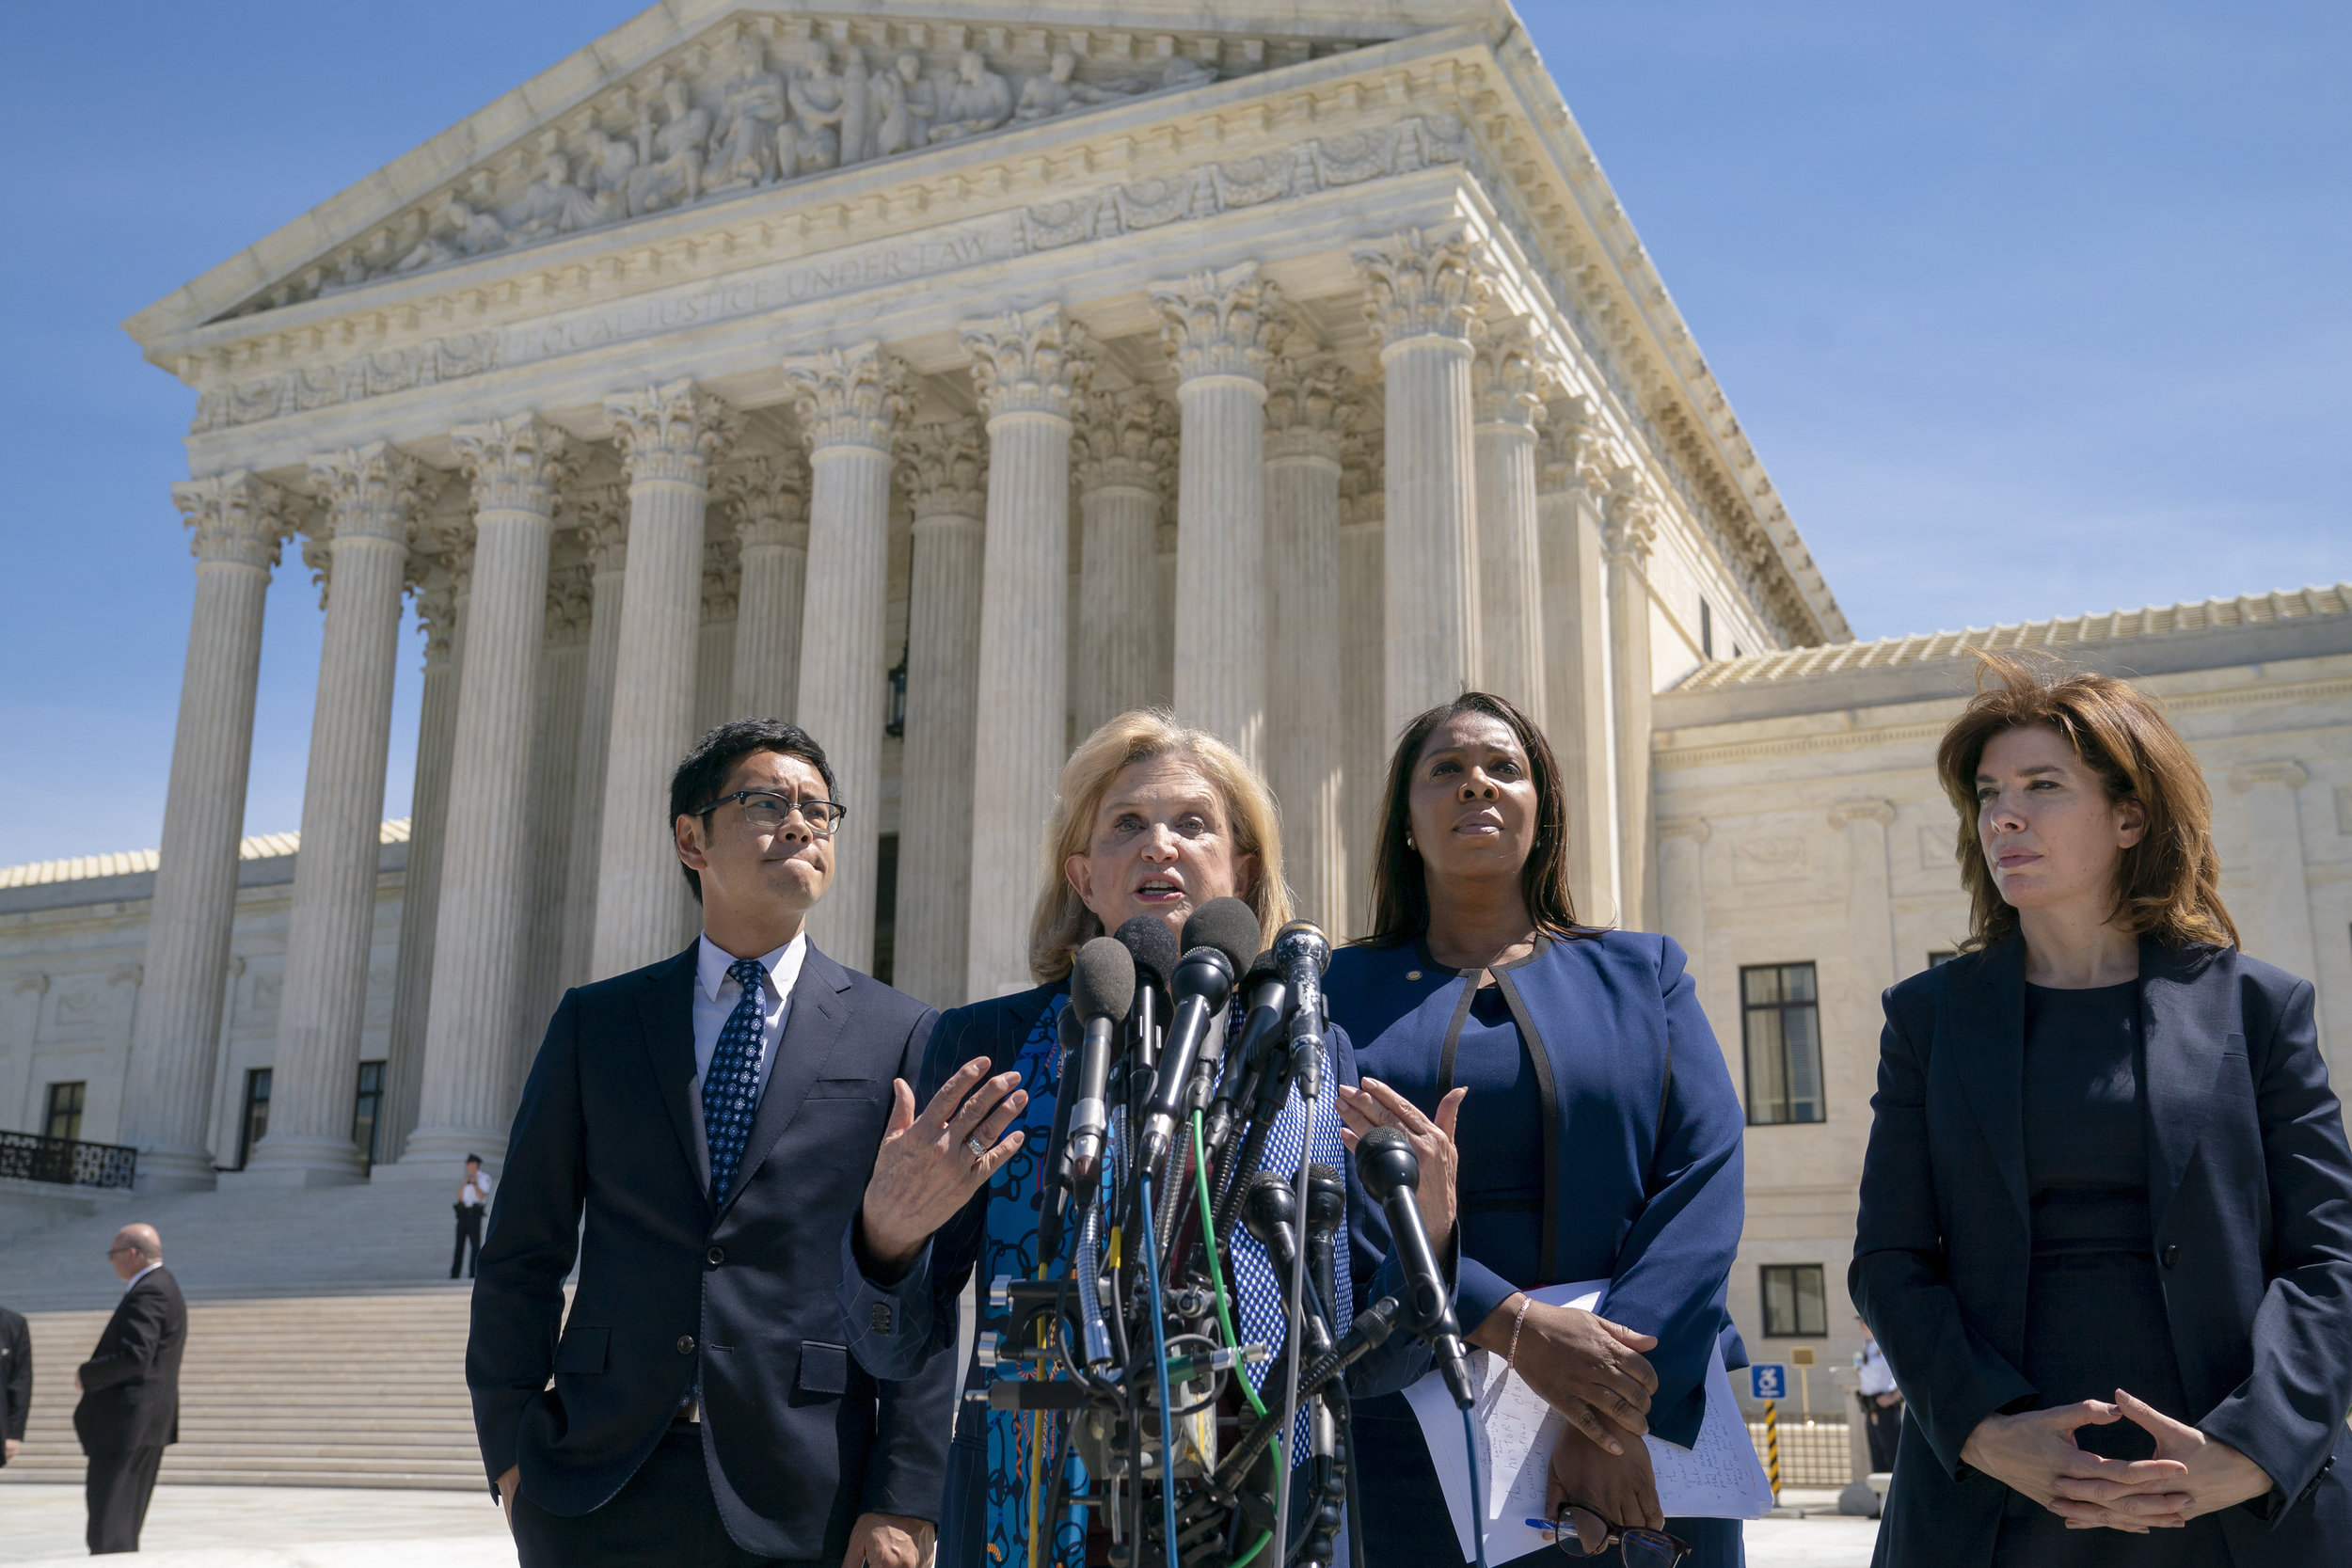 U.S. Rep. Carolyn Maloney (center) joined Dale Ho, attorney for the American Civil Liberties Union (left)m New York State Attorney General Letitia James (second from right) and New York City Census Director Julie Menin (right), speaks to reporters after the Supreme Court heard arguments over the Trump administration's plan to ask about citizenship on the 2020 census, in Washington, D.C. on Tuesday, April 23, 2019. Critics say adding the question would discourage many immigrants from being counted, leading to an inaccurate count. AP Photo/J. Scott Applewhite.